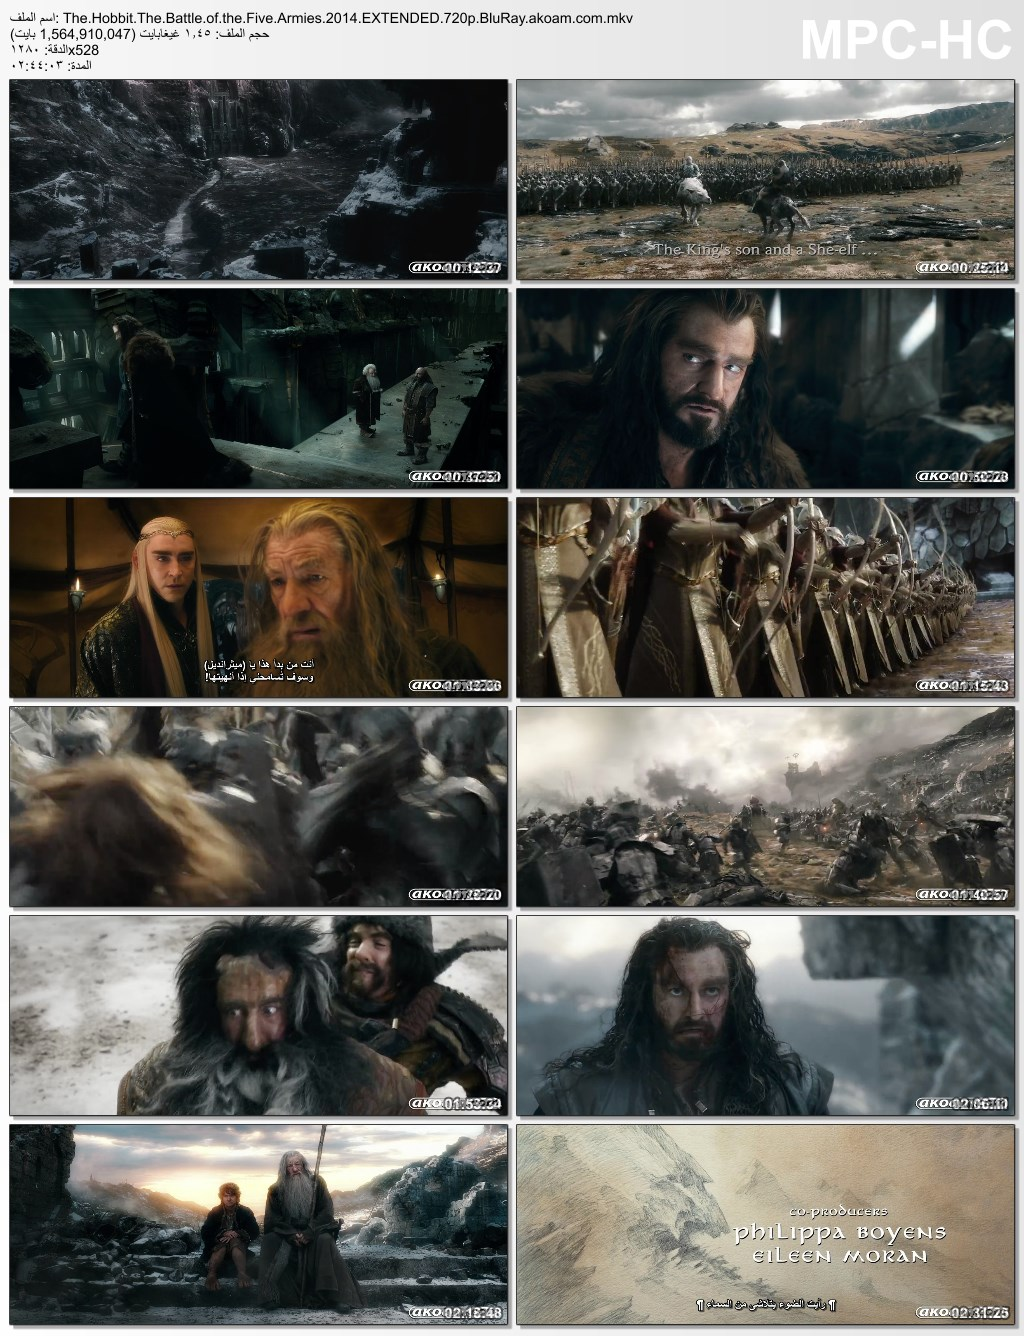 The Hobbit: The Battle of the Five Armies,The Hobbit: The Battle of the Five Armies 2014,هوبيت,الملحمي,المغامرات,الفانتزيا